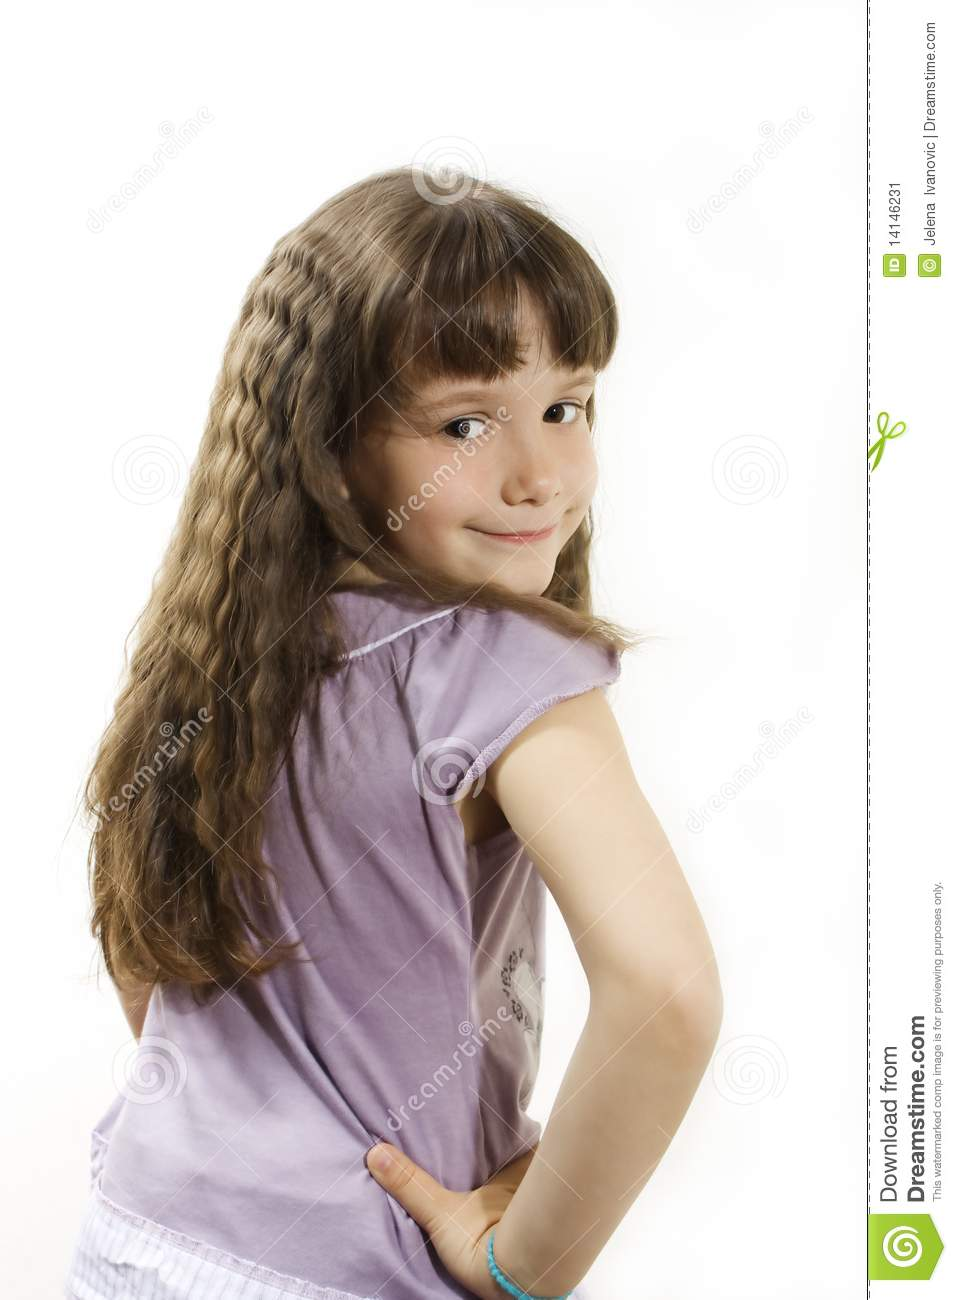 Little Beauty Royalty Free Stock Images: Beautiful Little Girl With Long Hair Stock Image